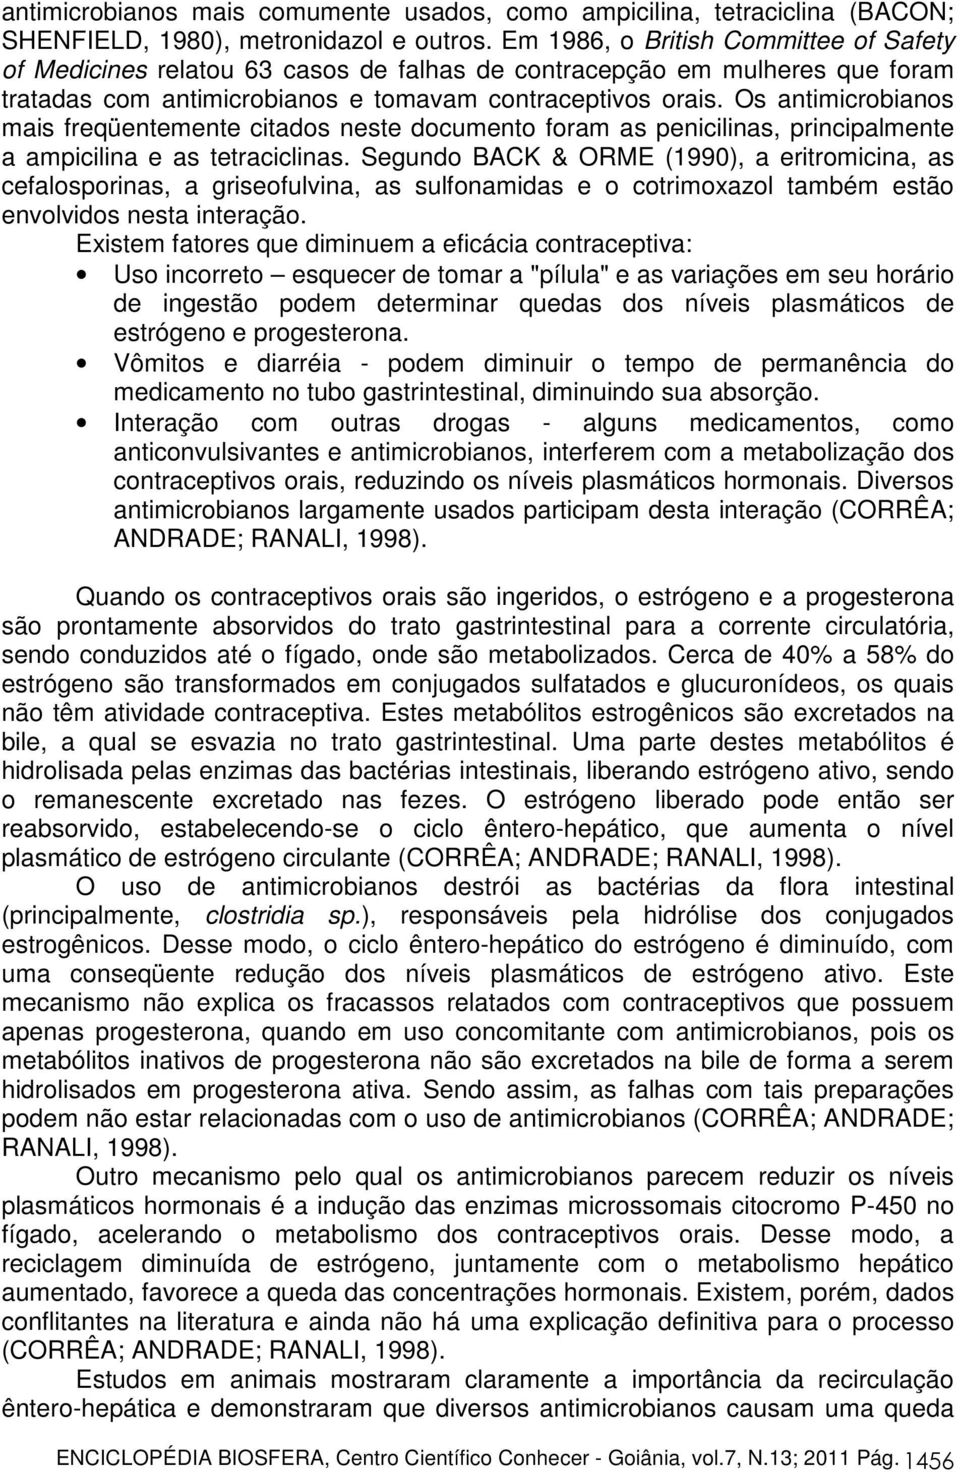 Os antimicrobianos mais freqüentemente citados neste documento foram as penicilinas, principalmente a ampicilina e as tetraciclinas.